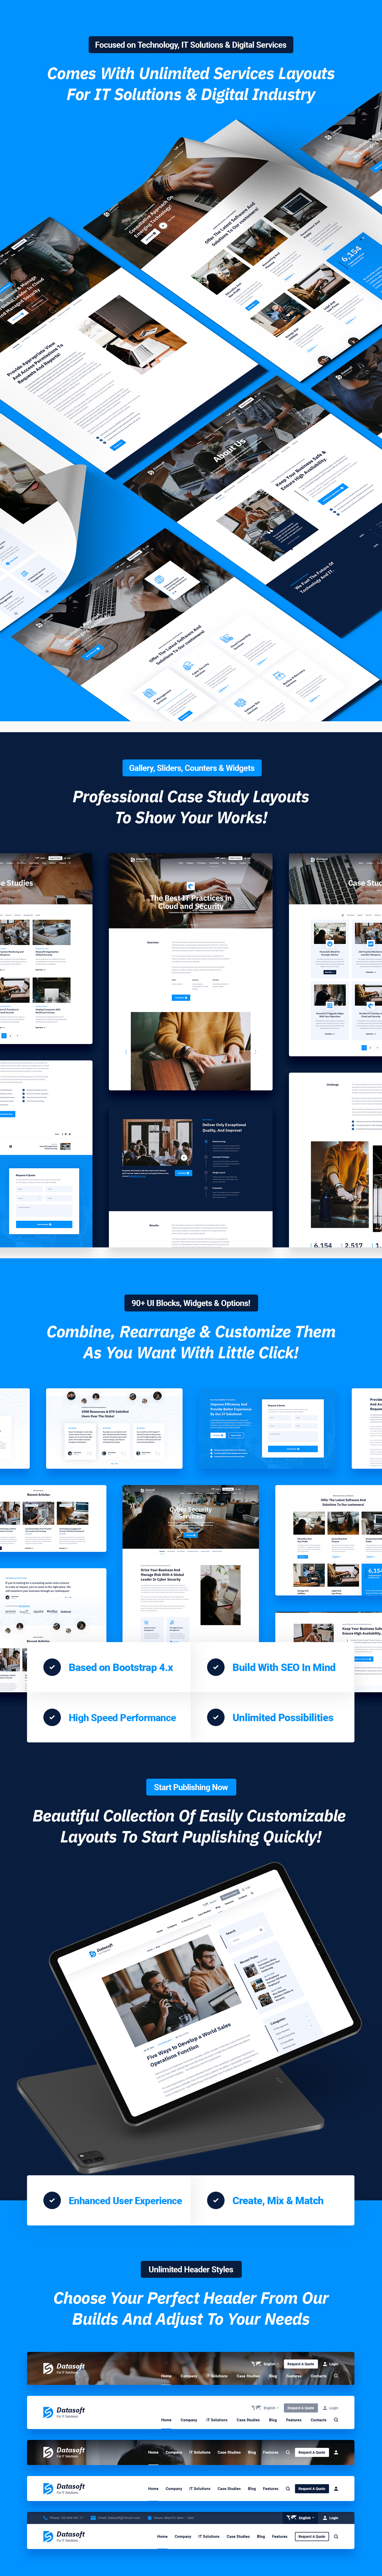 Datasoft - IT Solutions & Services HTML5 Template - 6